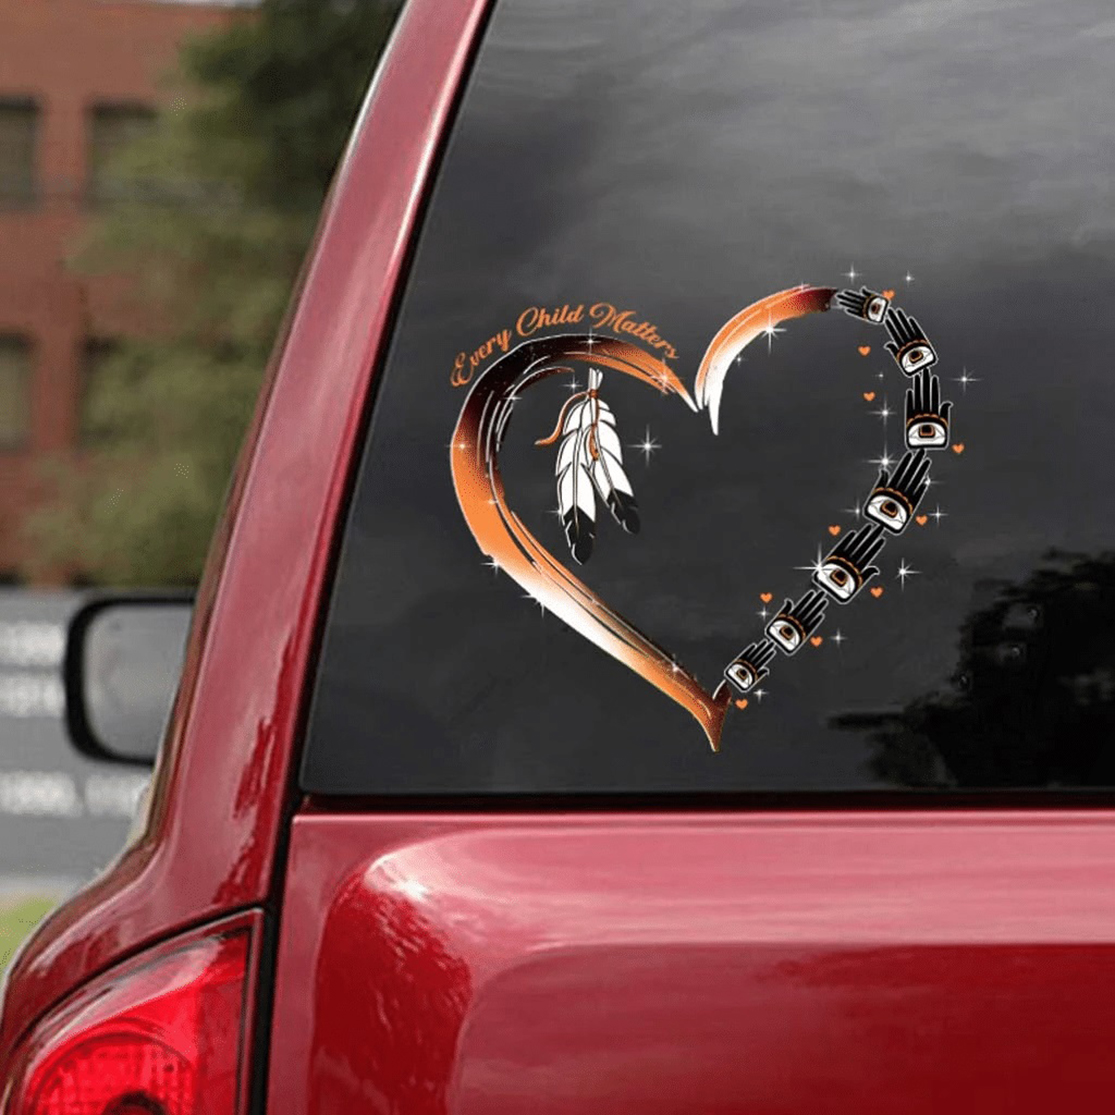 Every child matters native american car sticker decal - Picture 3